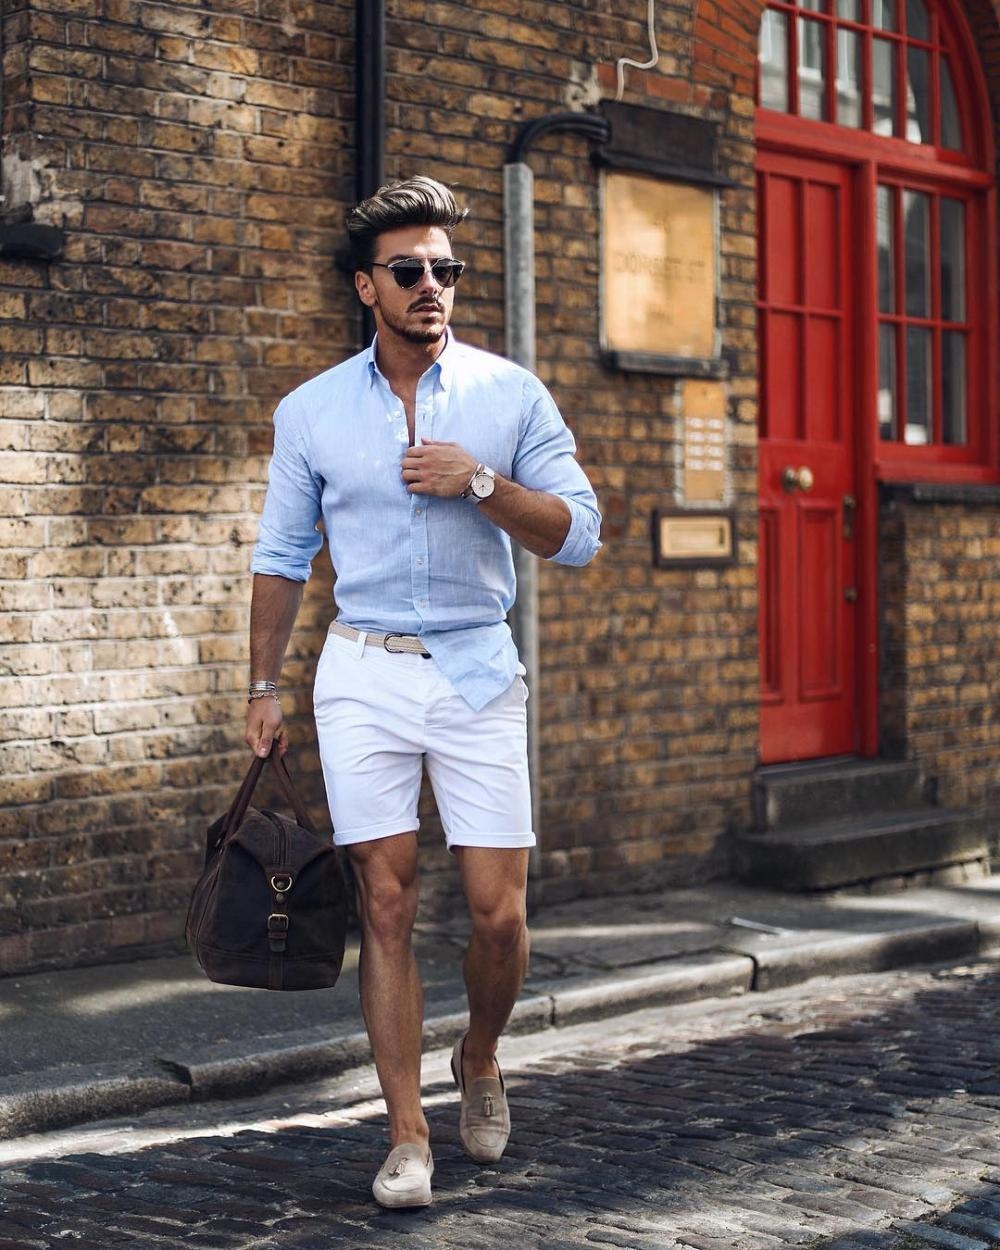 Another elegant outfit for summer travel. Blue shirt and white shorts - hit of the season